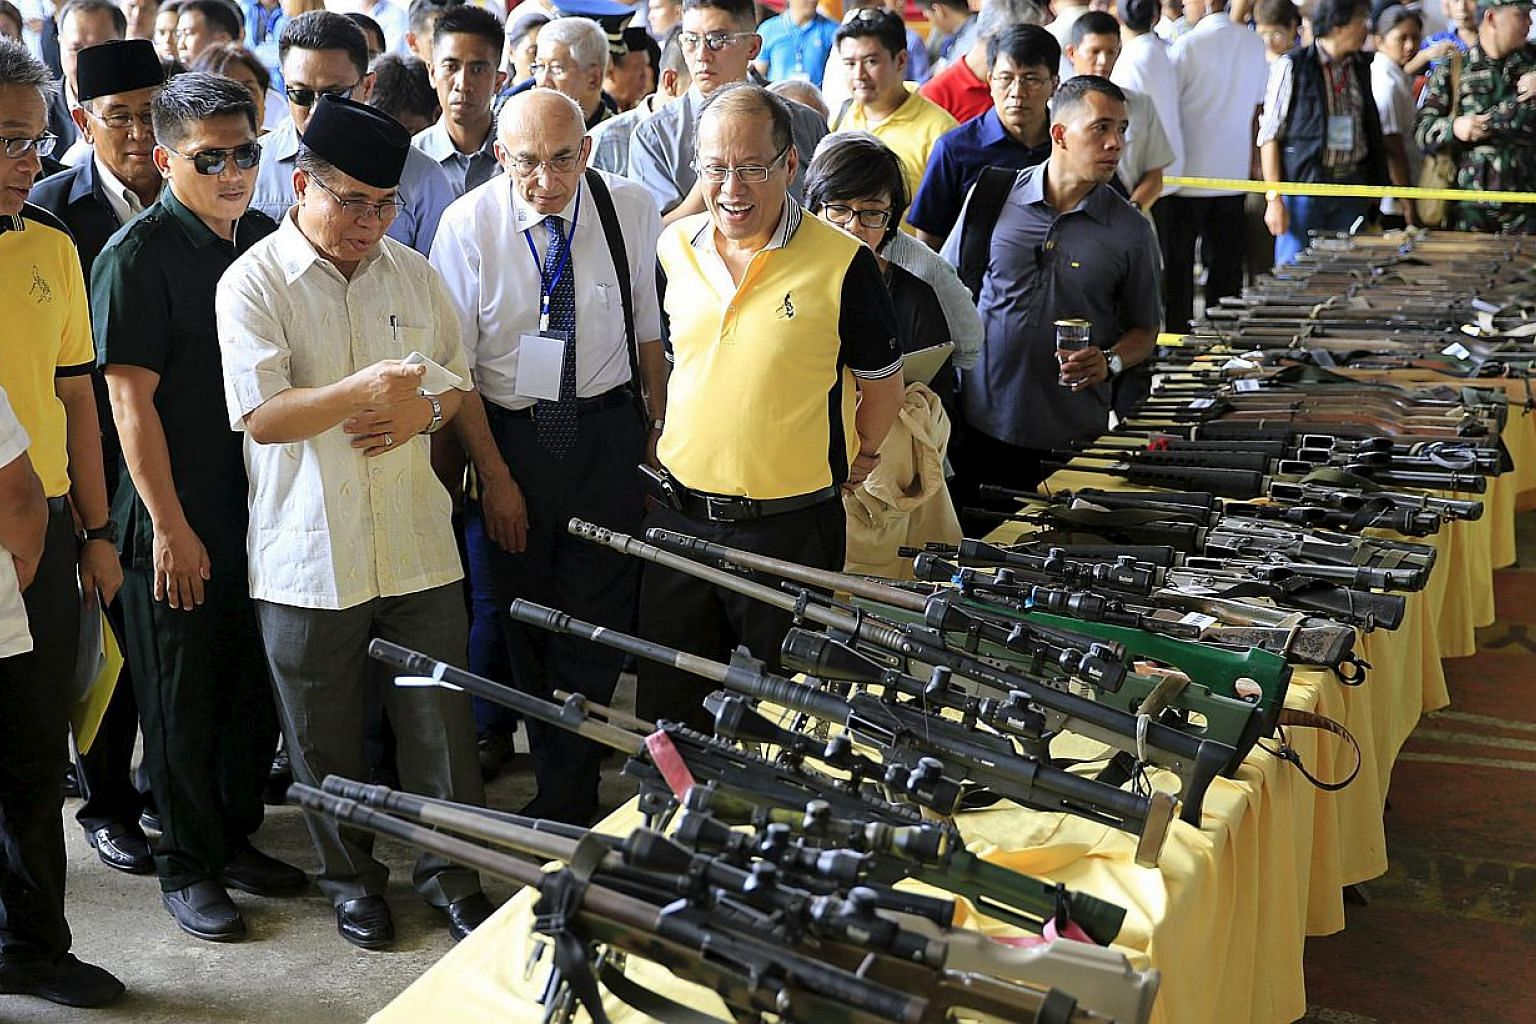 Philippine President Benigno Aquino (front right) and Al-haj Murad Ebrahim (front third right), chairman of the Moro Islamic Liberation Front (MILF), look at weapons during the Ceremonial Turnover of Weapons and Decommissioning of MILF Combatants on